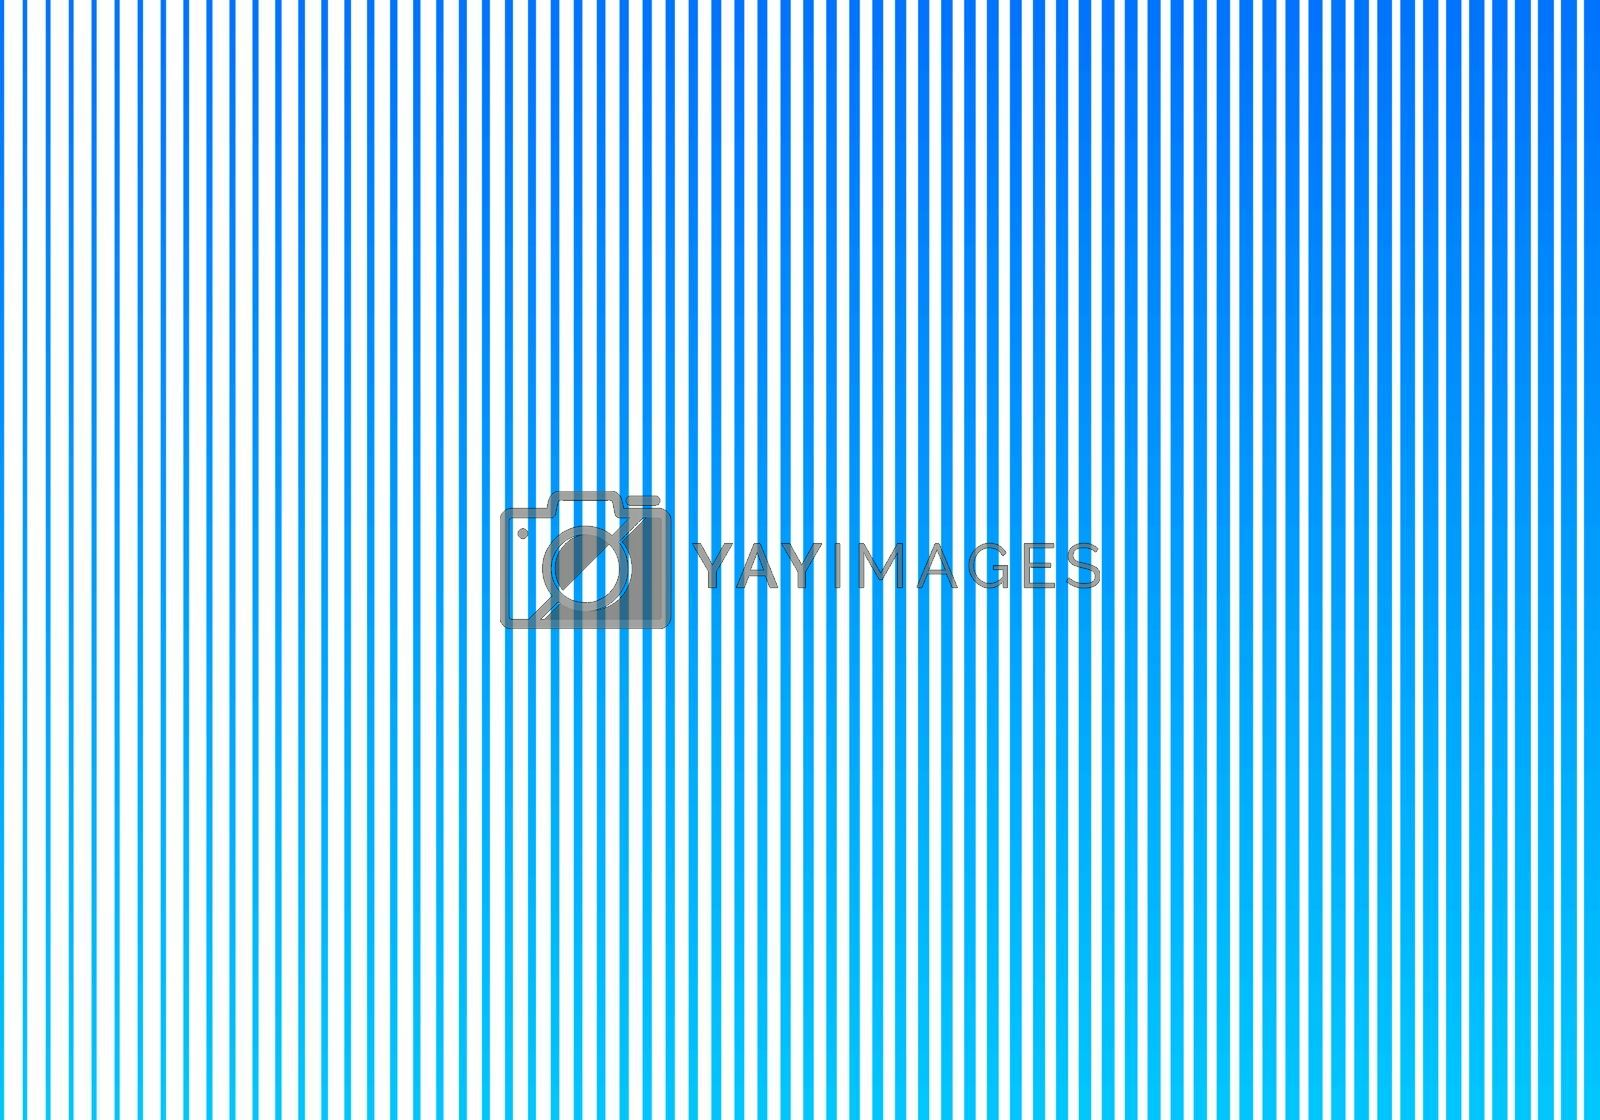 Abstract blue gradient color vertical lines pattern on white bac by phochi